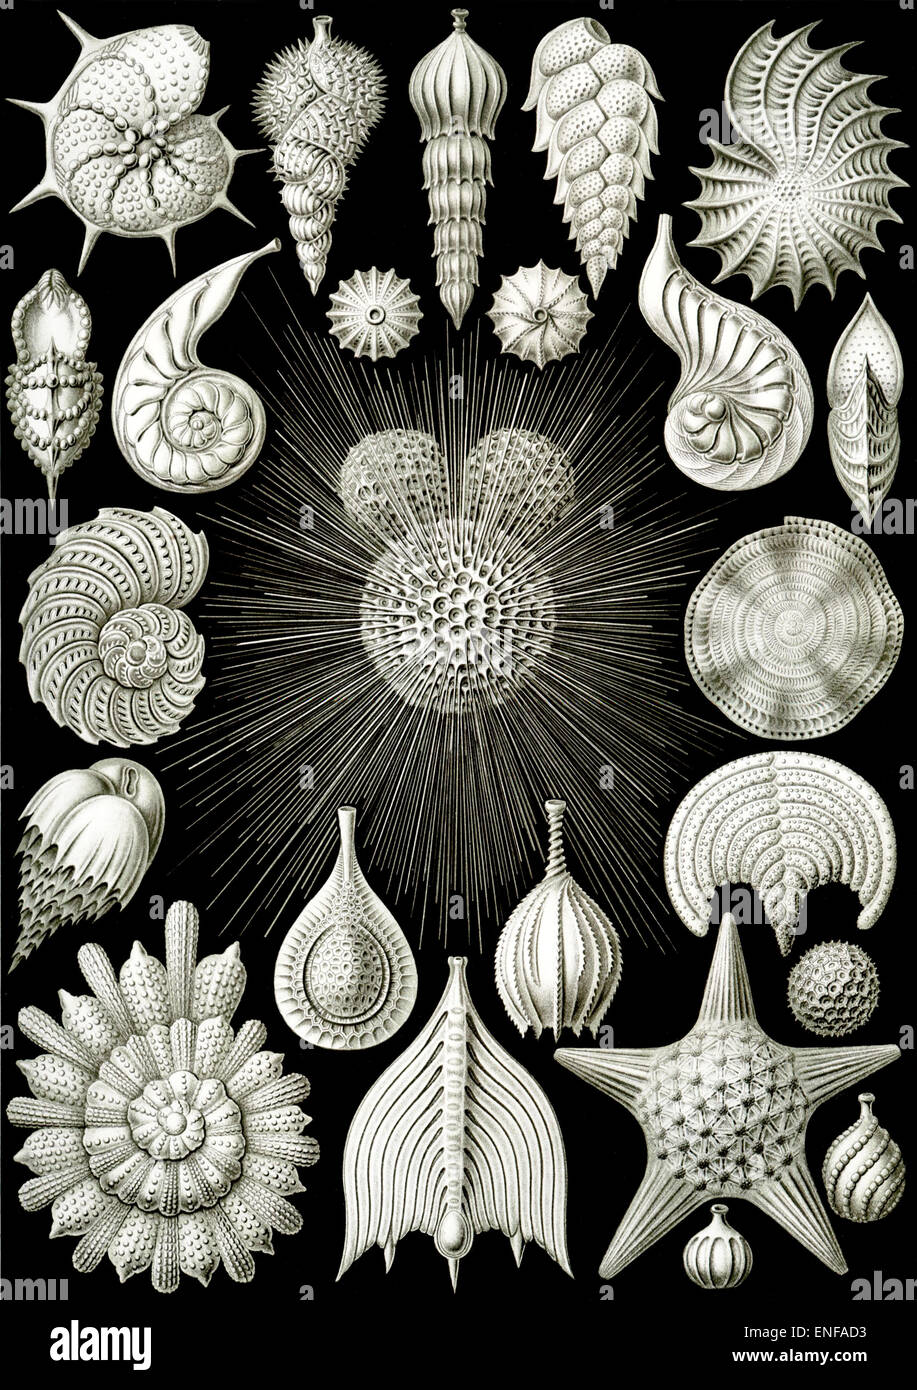 Thalamphora (Marine Plankton), by Ernst Haeckel, 1904 - Editorial use only. Stock Photo